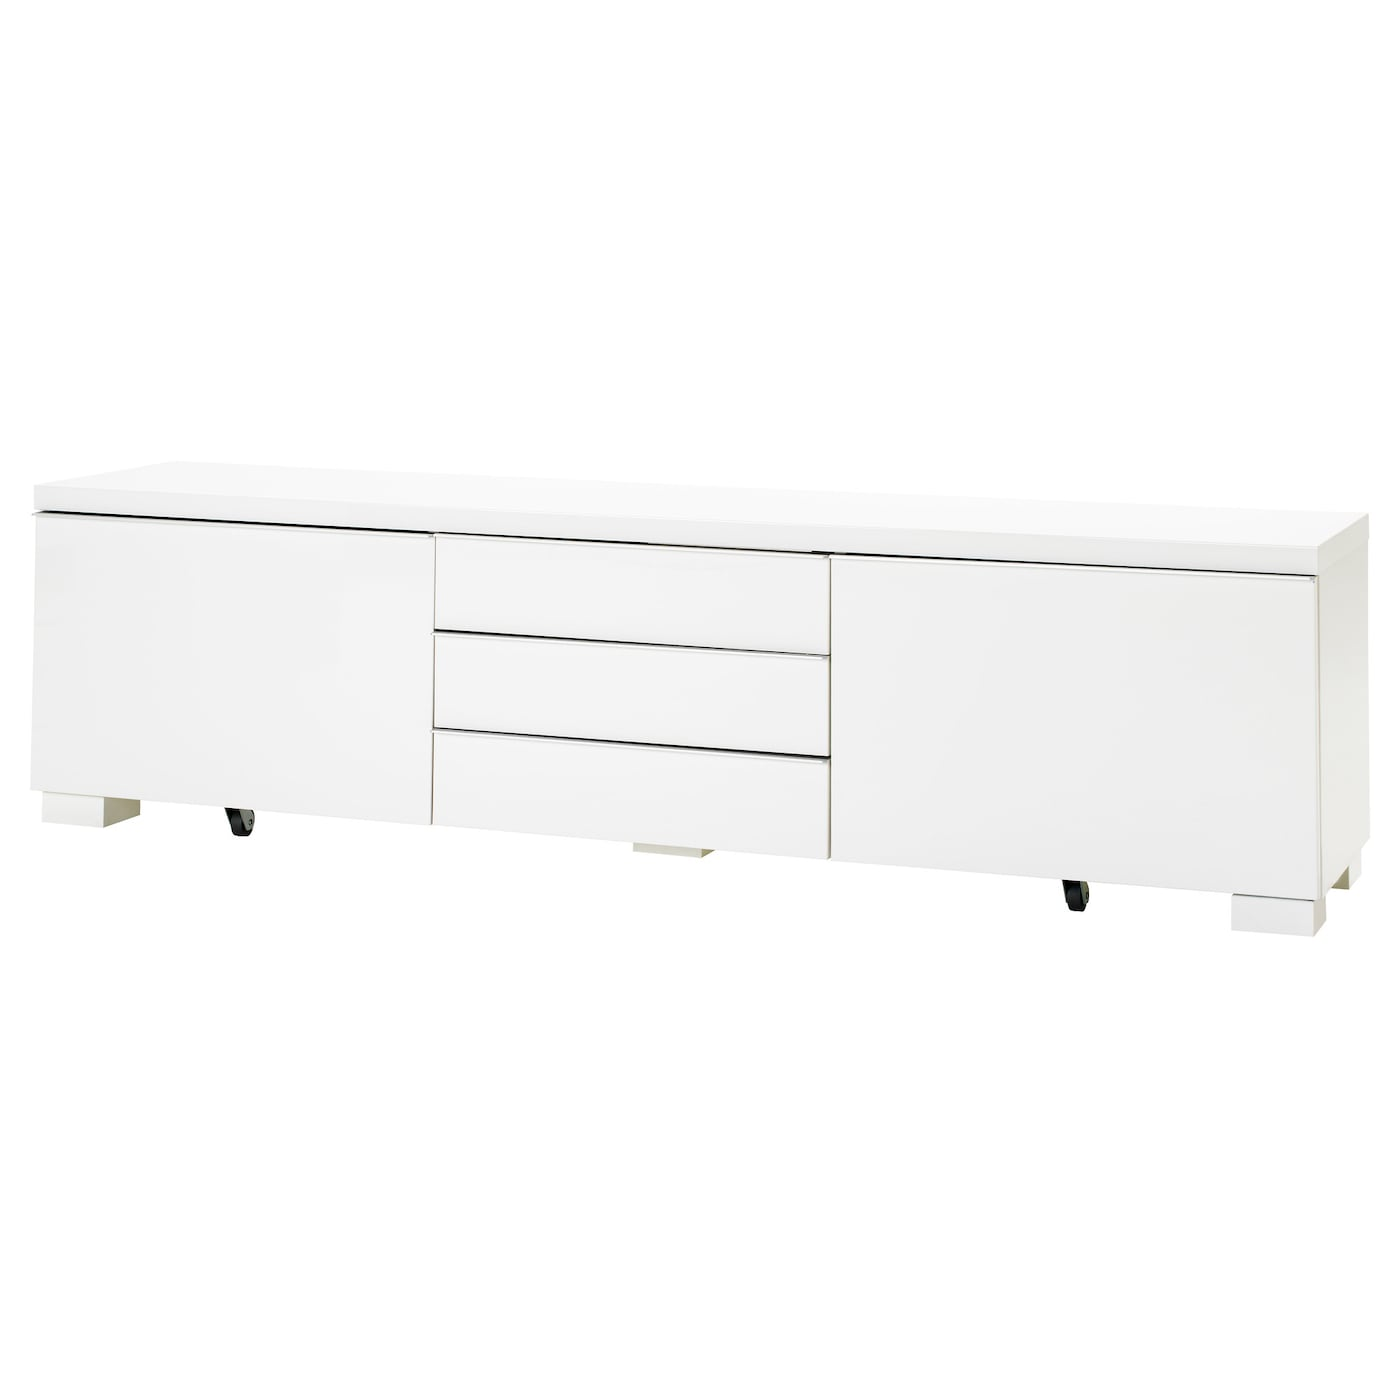 BESTÅ BURS TV Bench High-gloss White 180 X 41 X 49 Cm